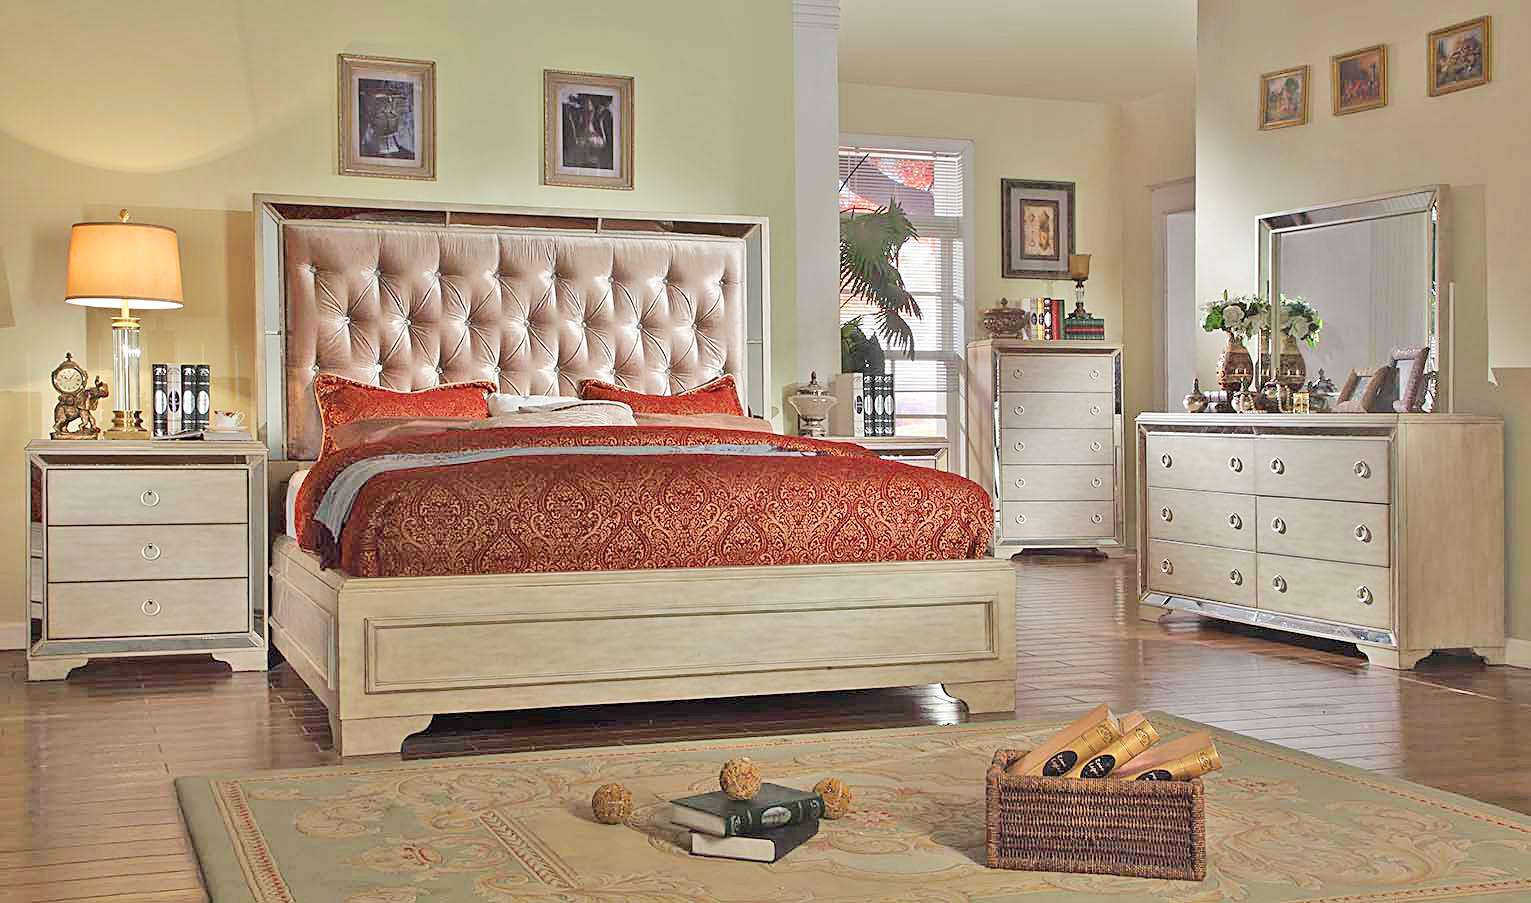 Del Sol Exclusive B9805 King Size Bedroom Group 2 - Item Number: B9805 4